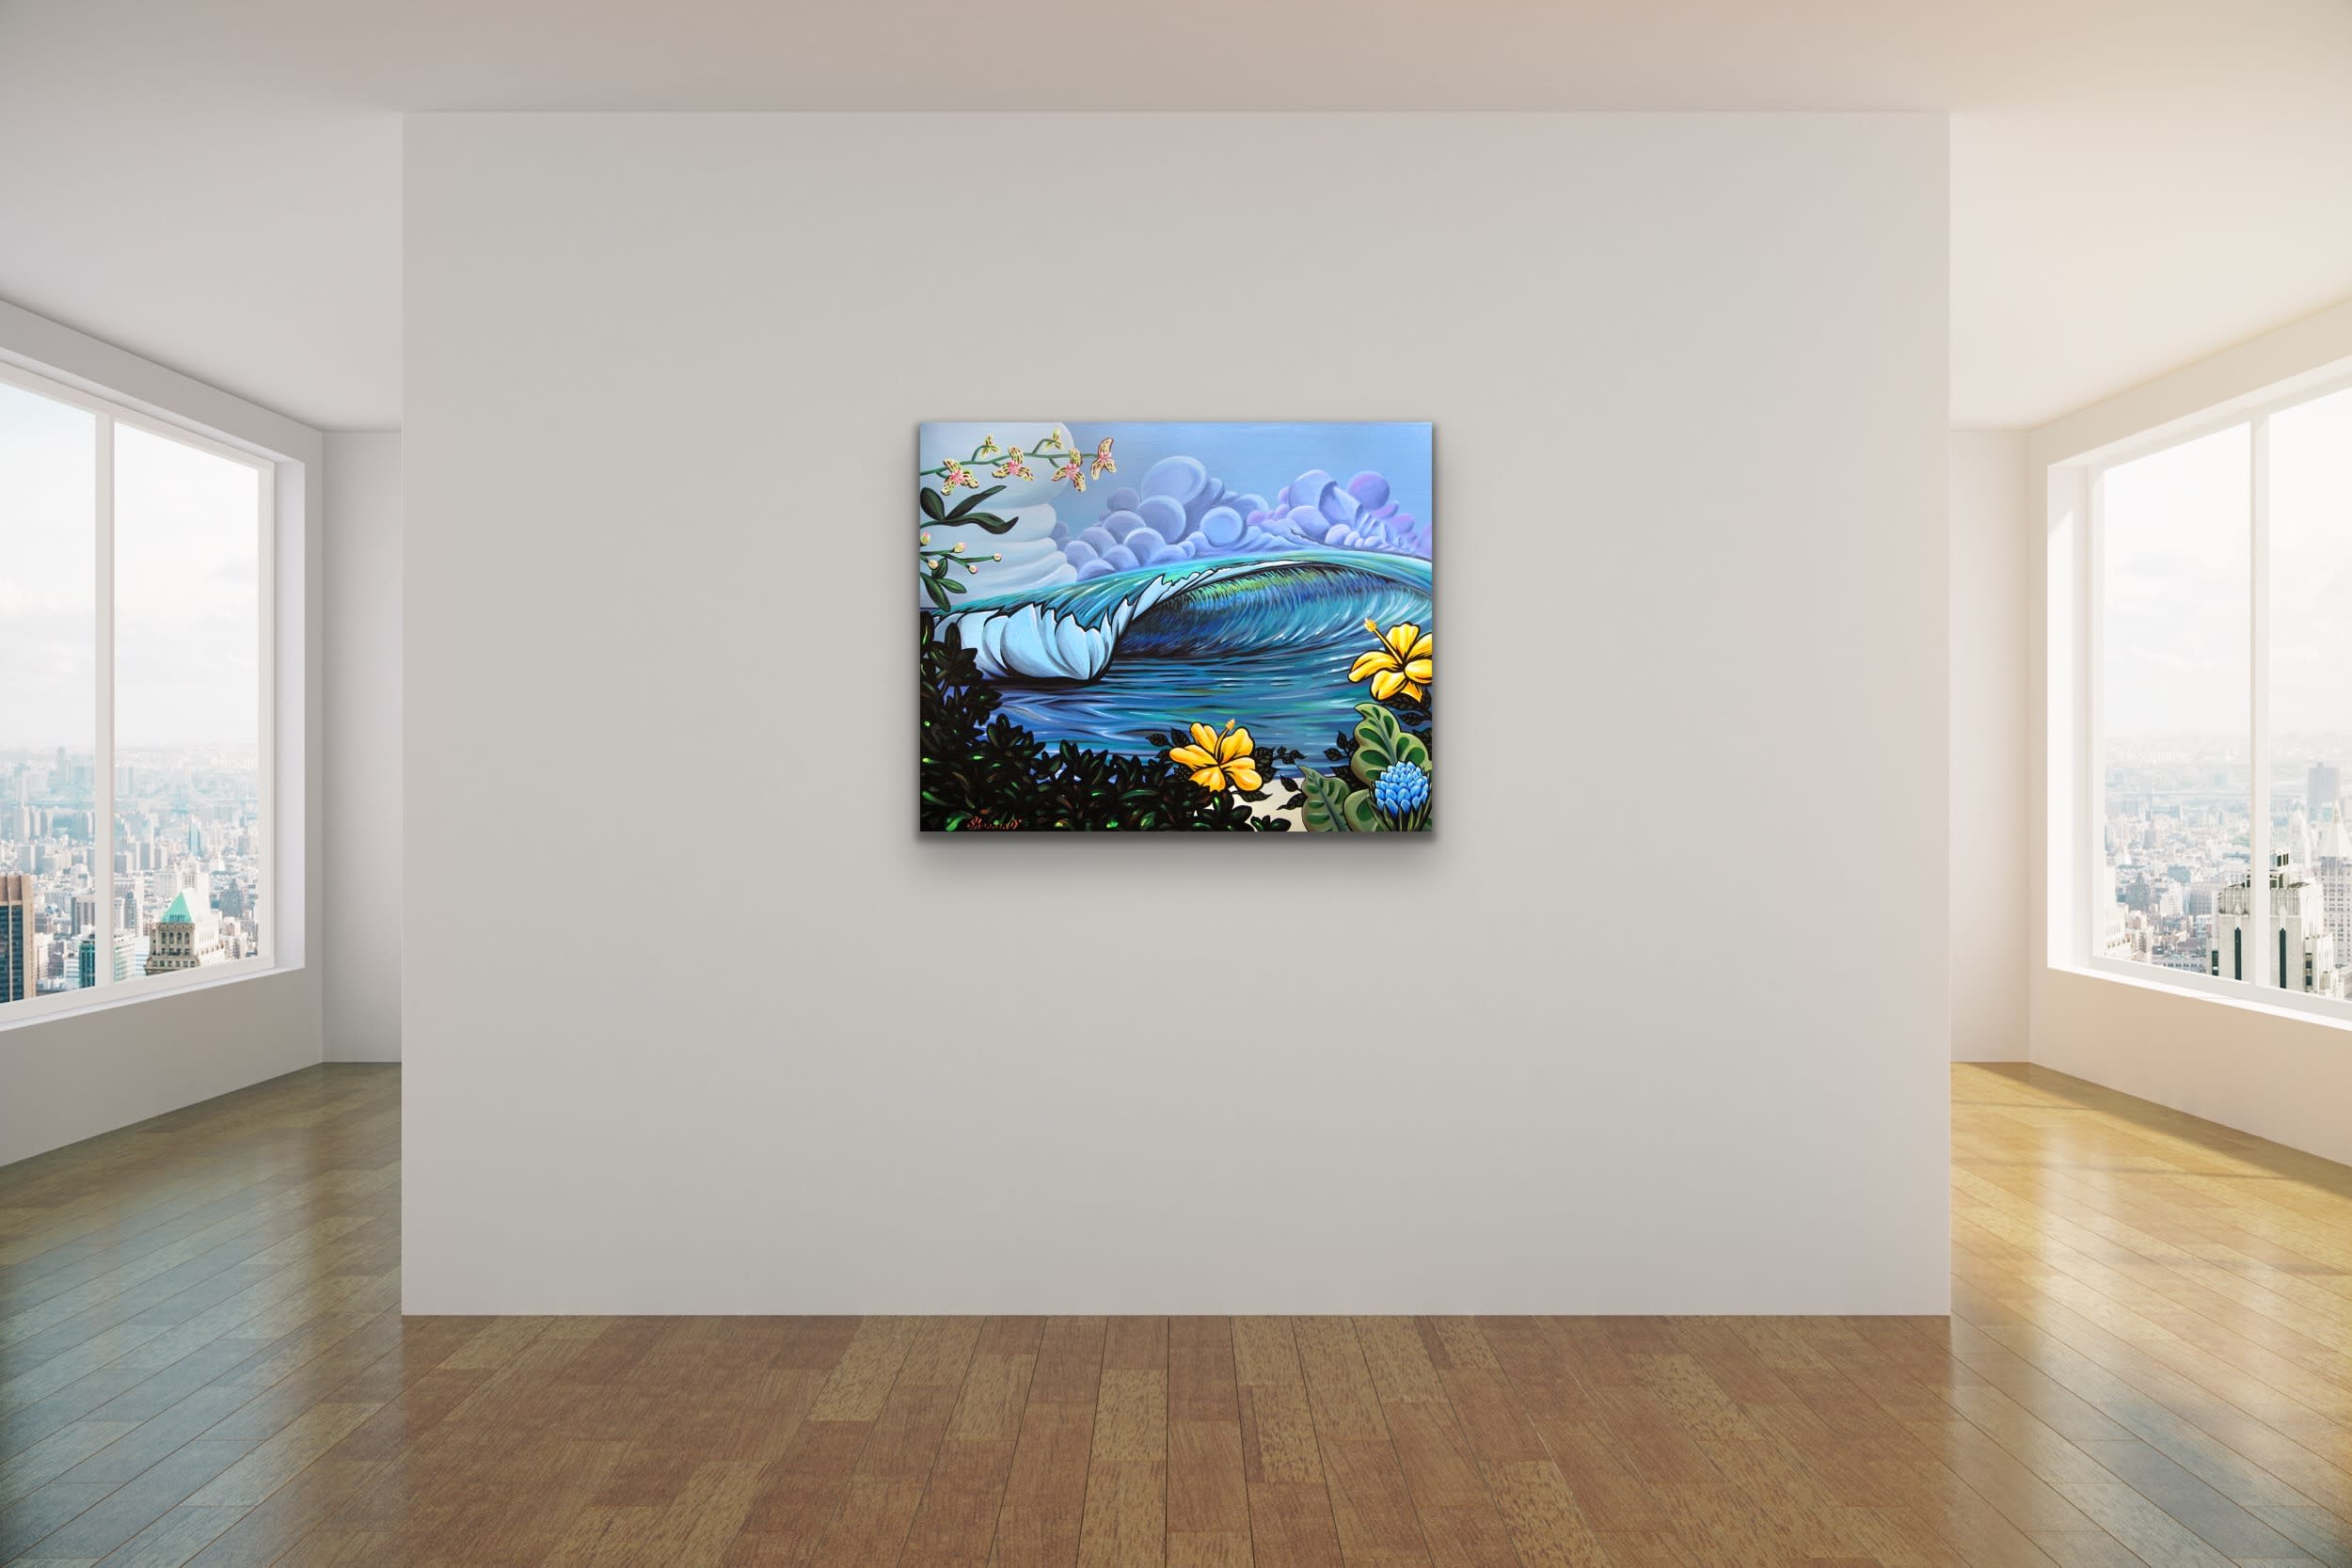 <div class='title'>           Shannon Oconnell Paintings Mock Ups Evo Art Maui Lahain Front Street Gallery Collect Popular Colorful Ocean Flowers Scenery Waves 2         </div>